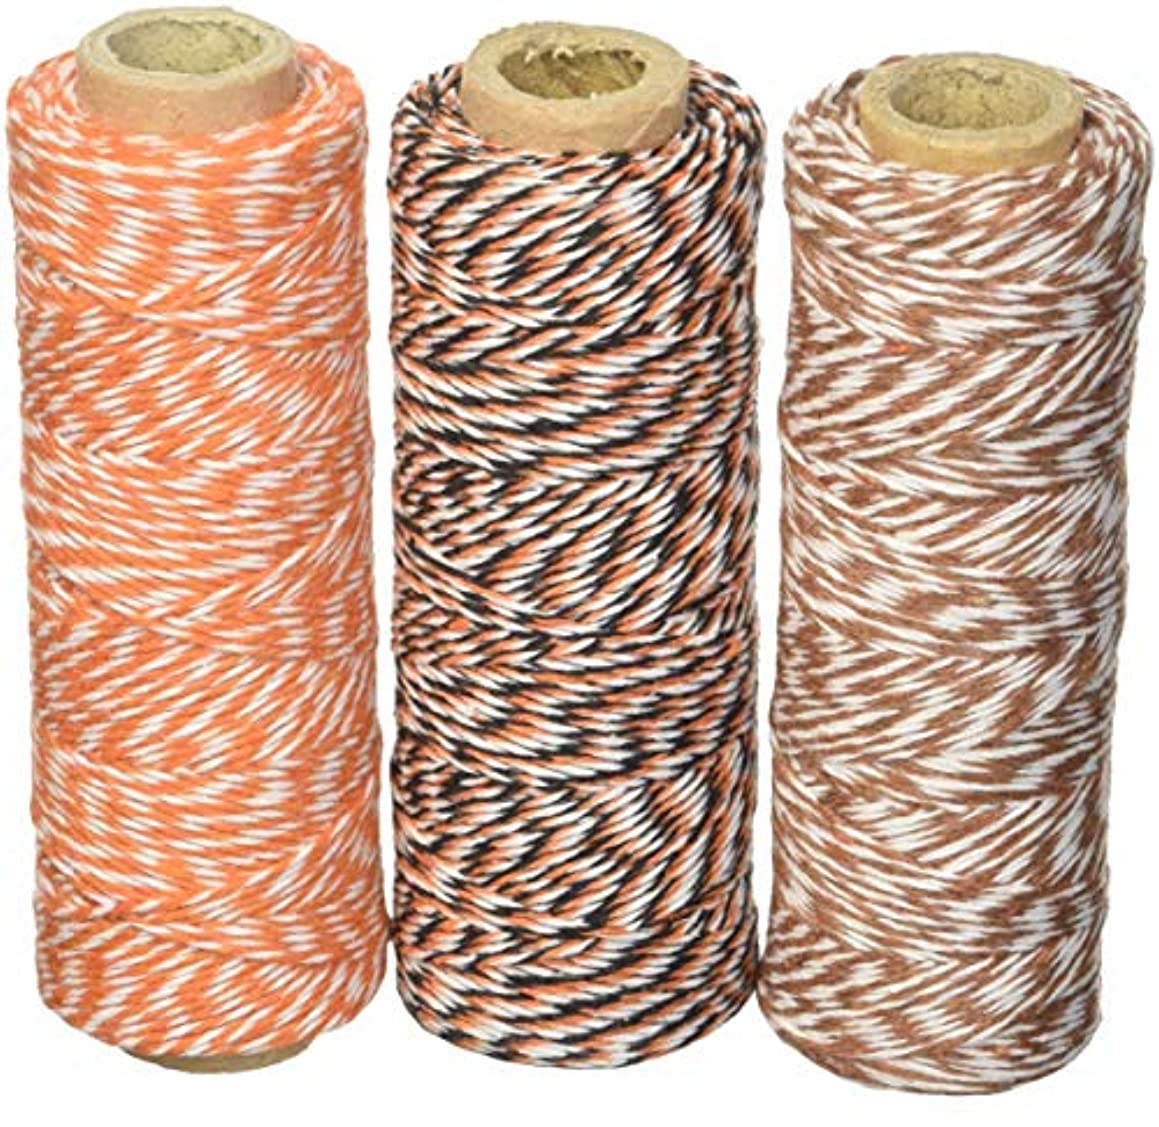 Wrapables 4-Ply Cotton Baker's Twine for Gift Wrapping and Arts and Crafts, 110-Yard Spool, Black and Orange/Brown/Orange, Set of 3